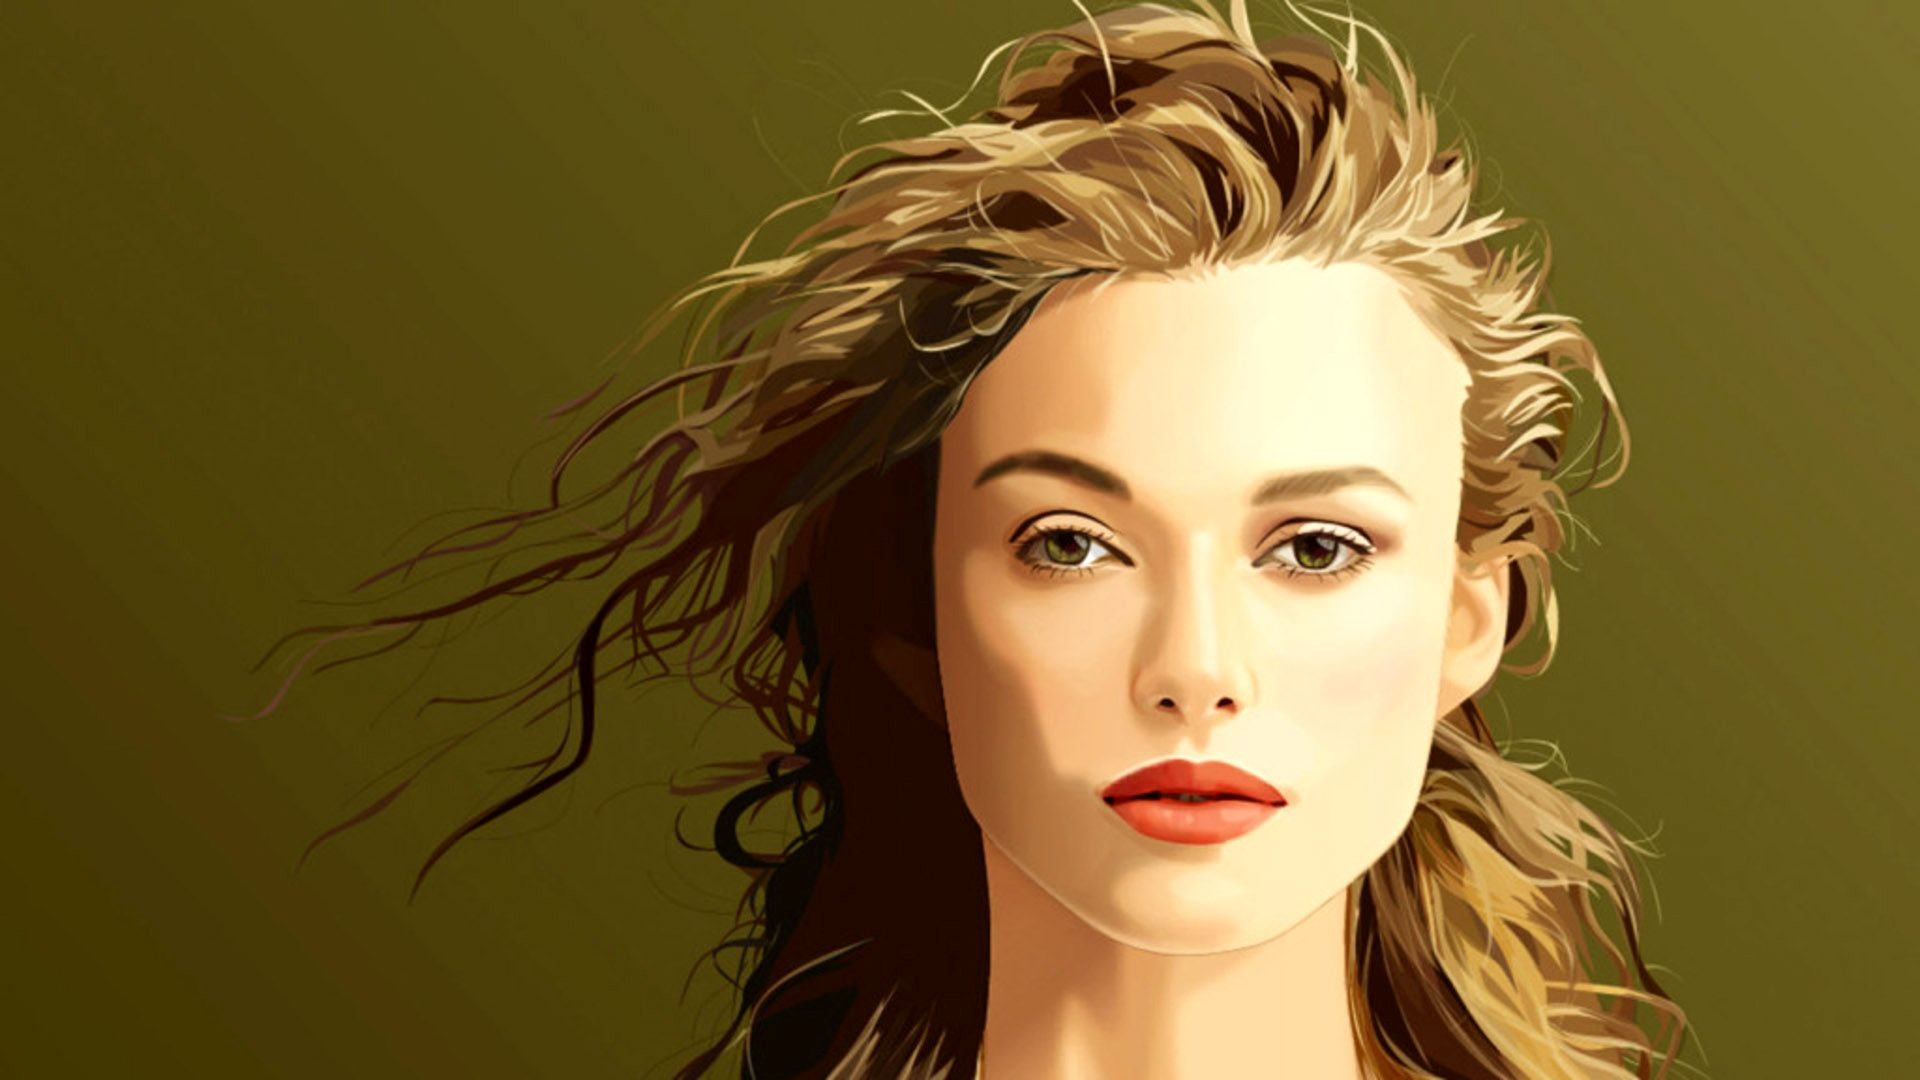 keira knightley vector